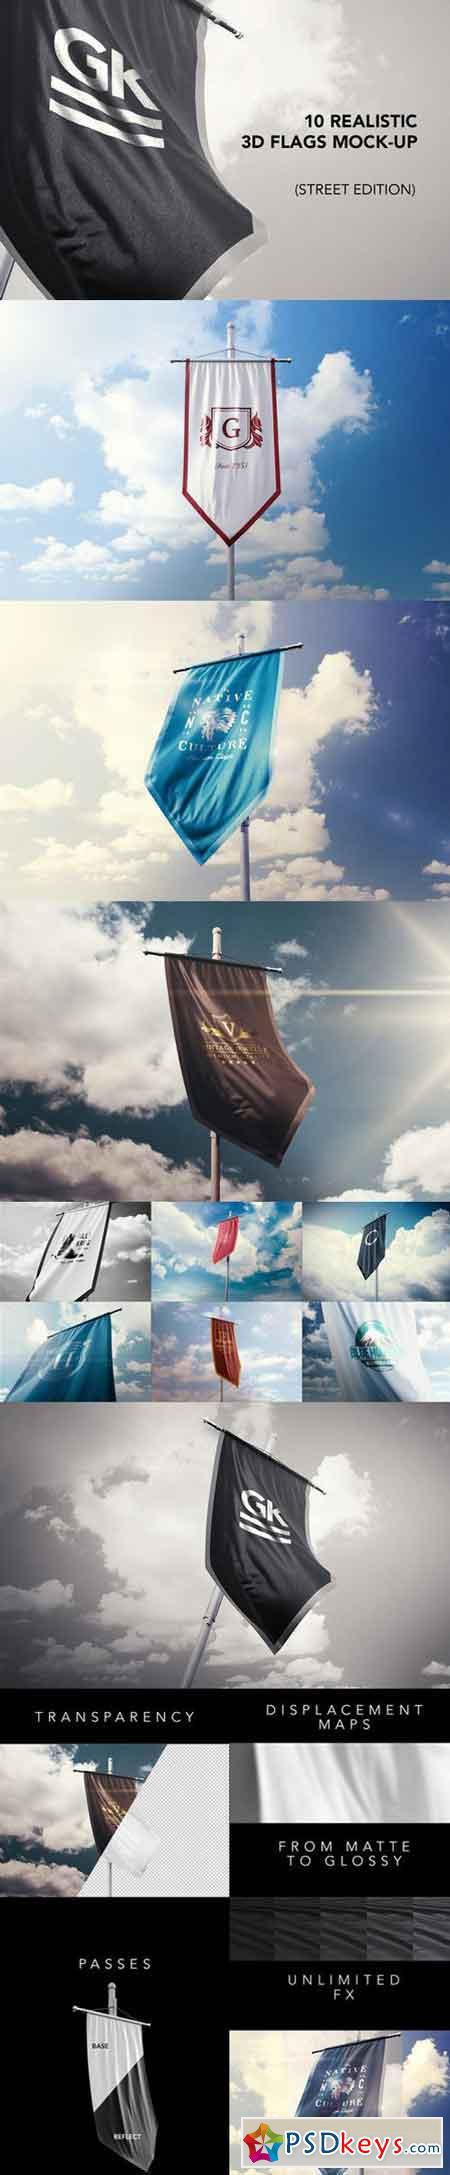 10 Realistic 3D Flags Mock-Up v2 914932